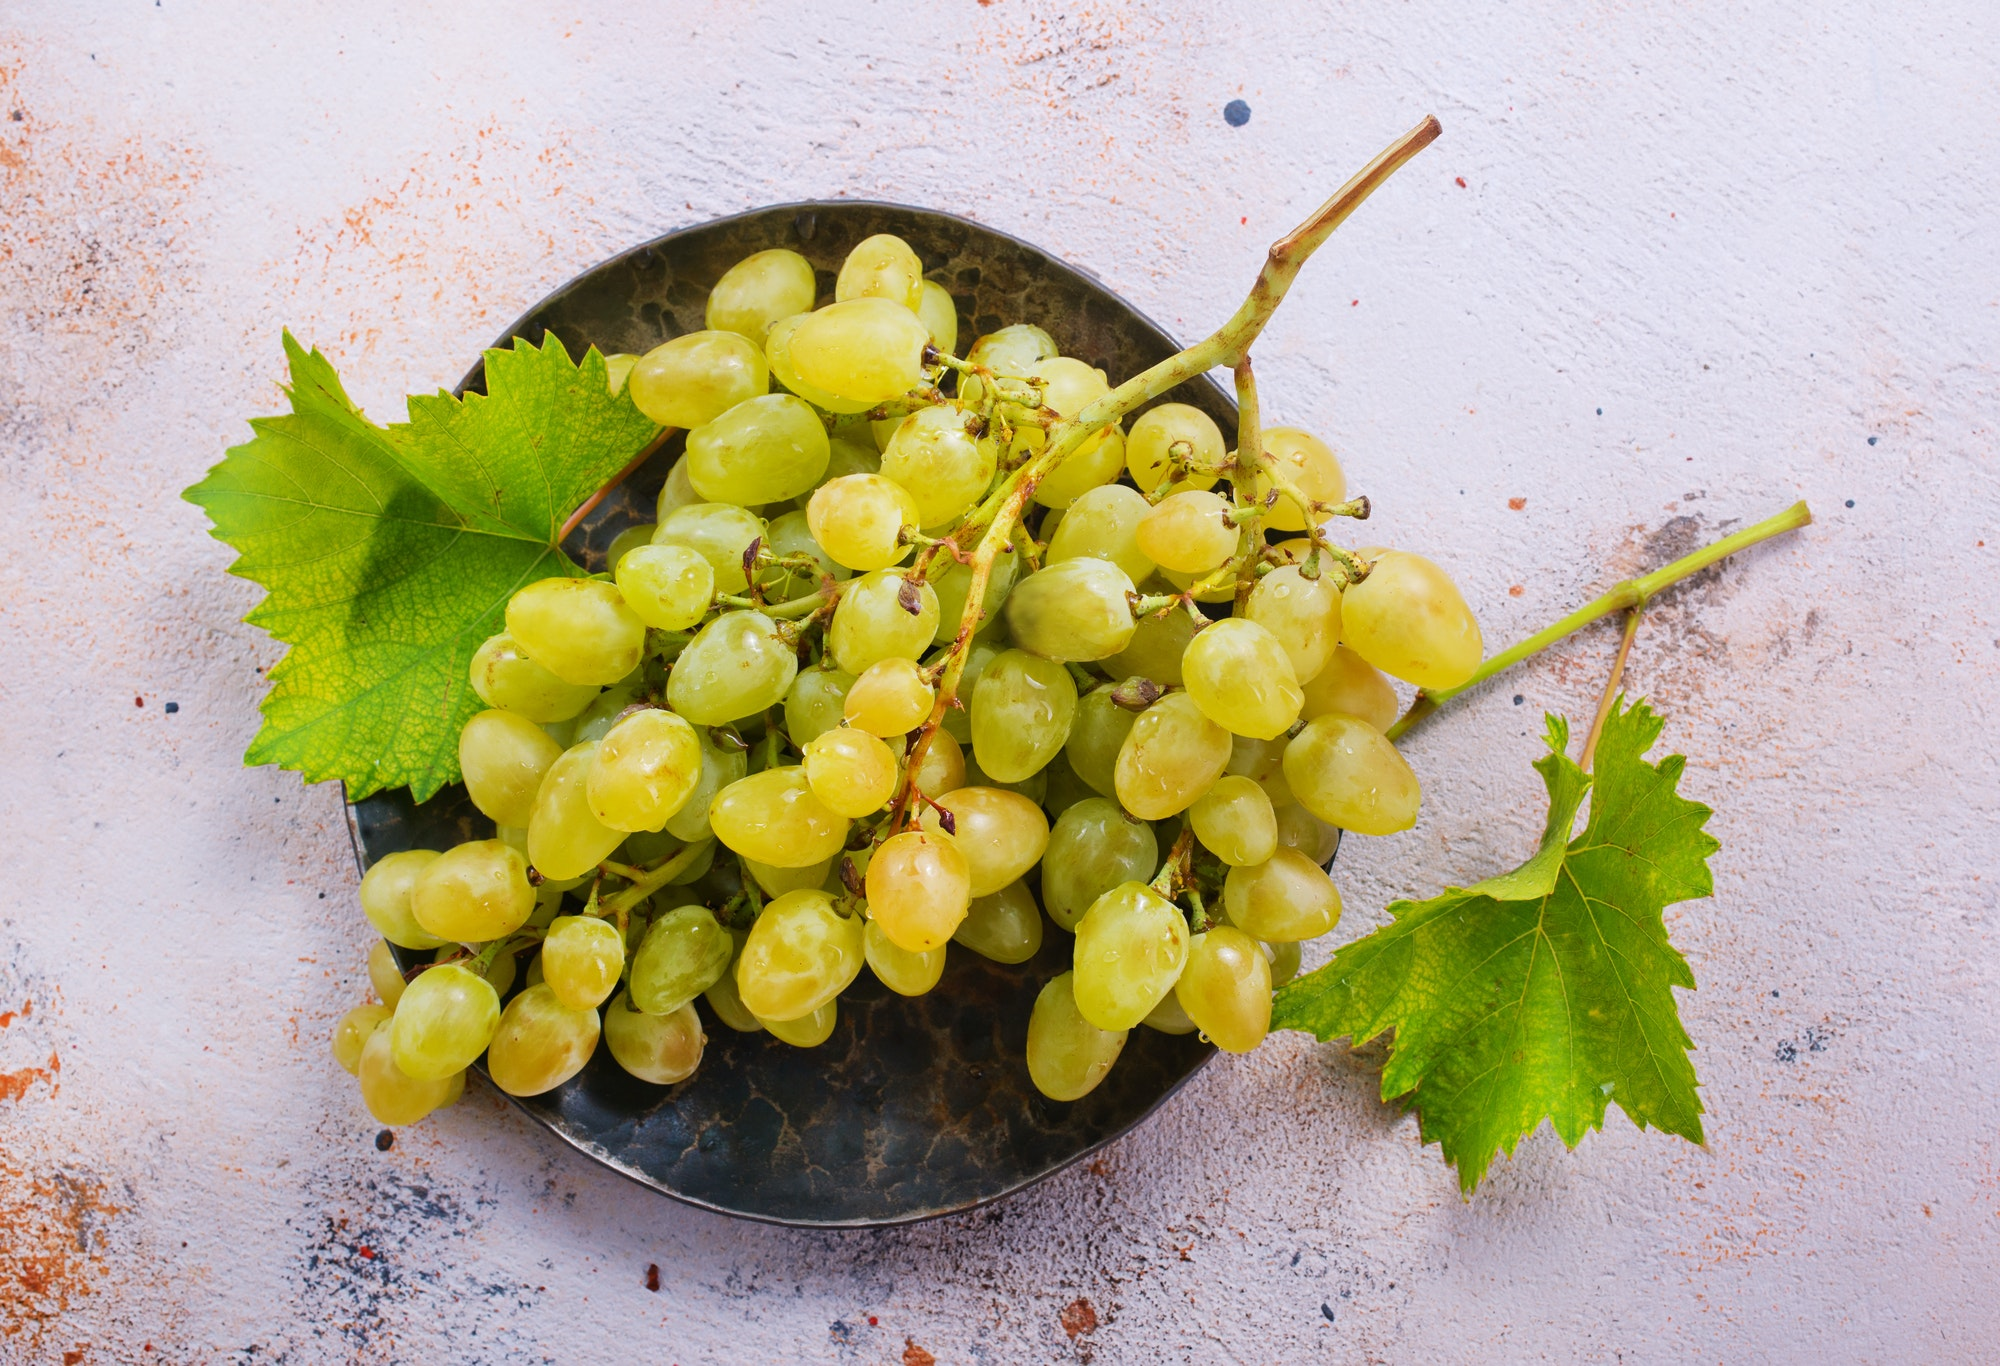 diabetes myths - are grapes really bad for us?